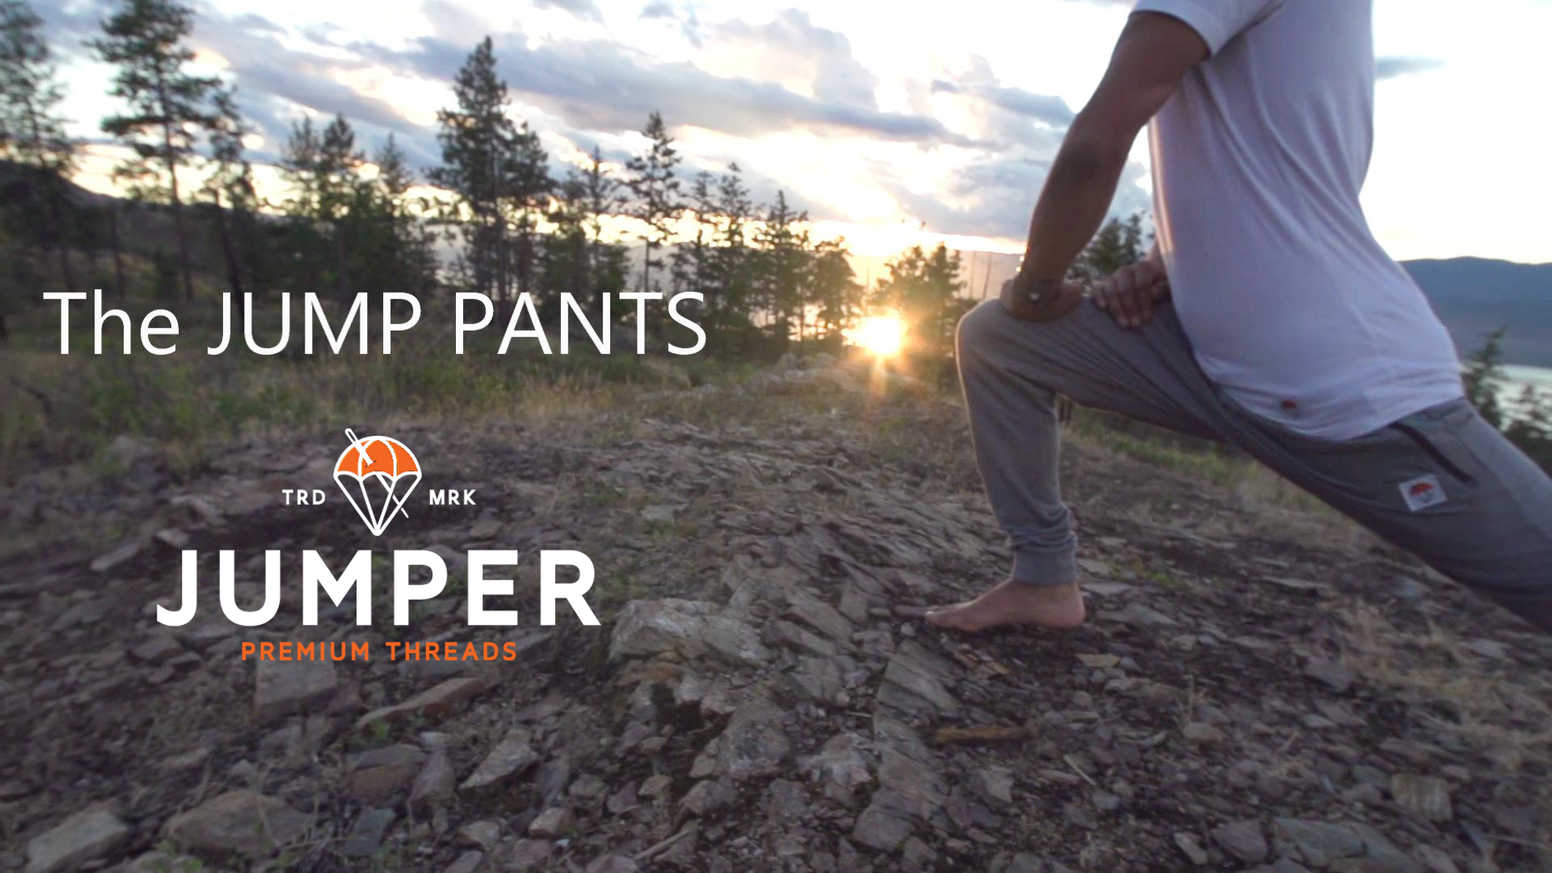 bef00ef6c The most ridiculously comfortable and innovated sweatpants on the planet.